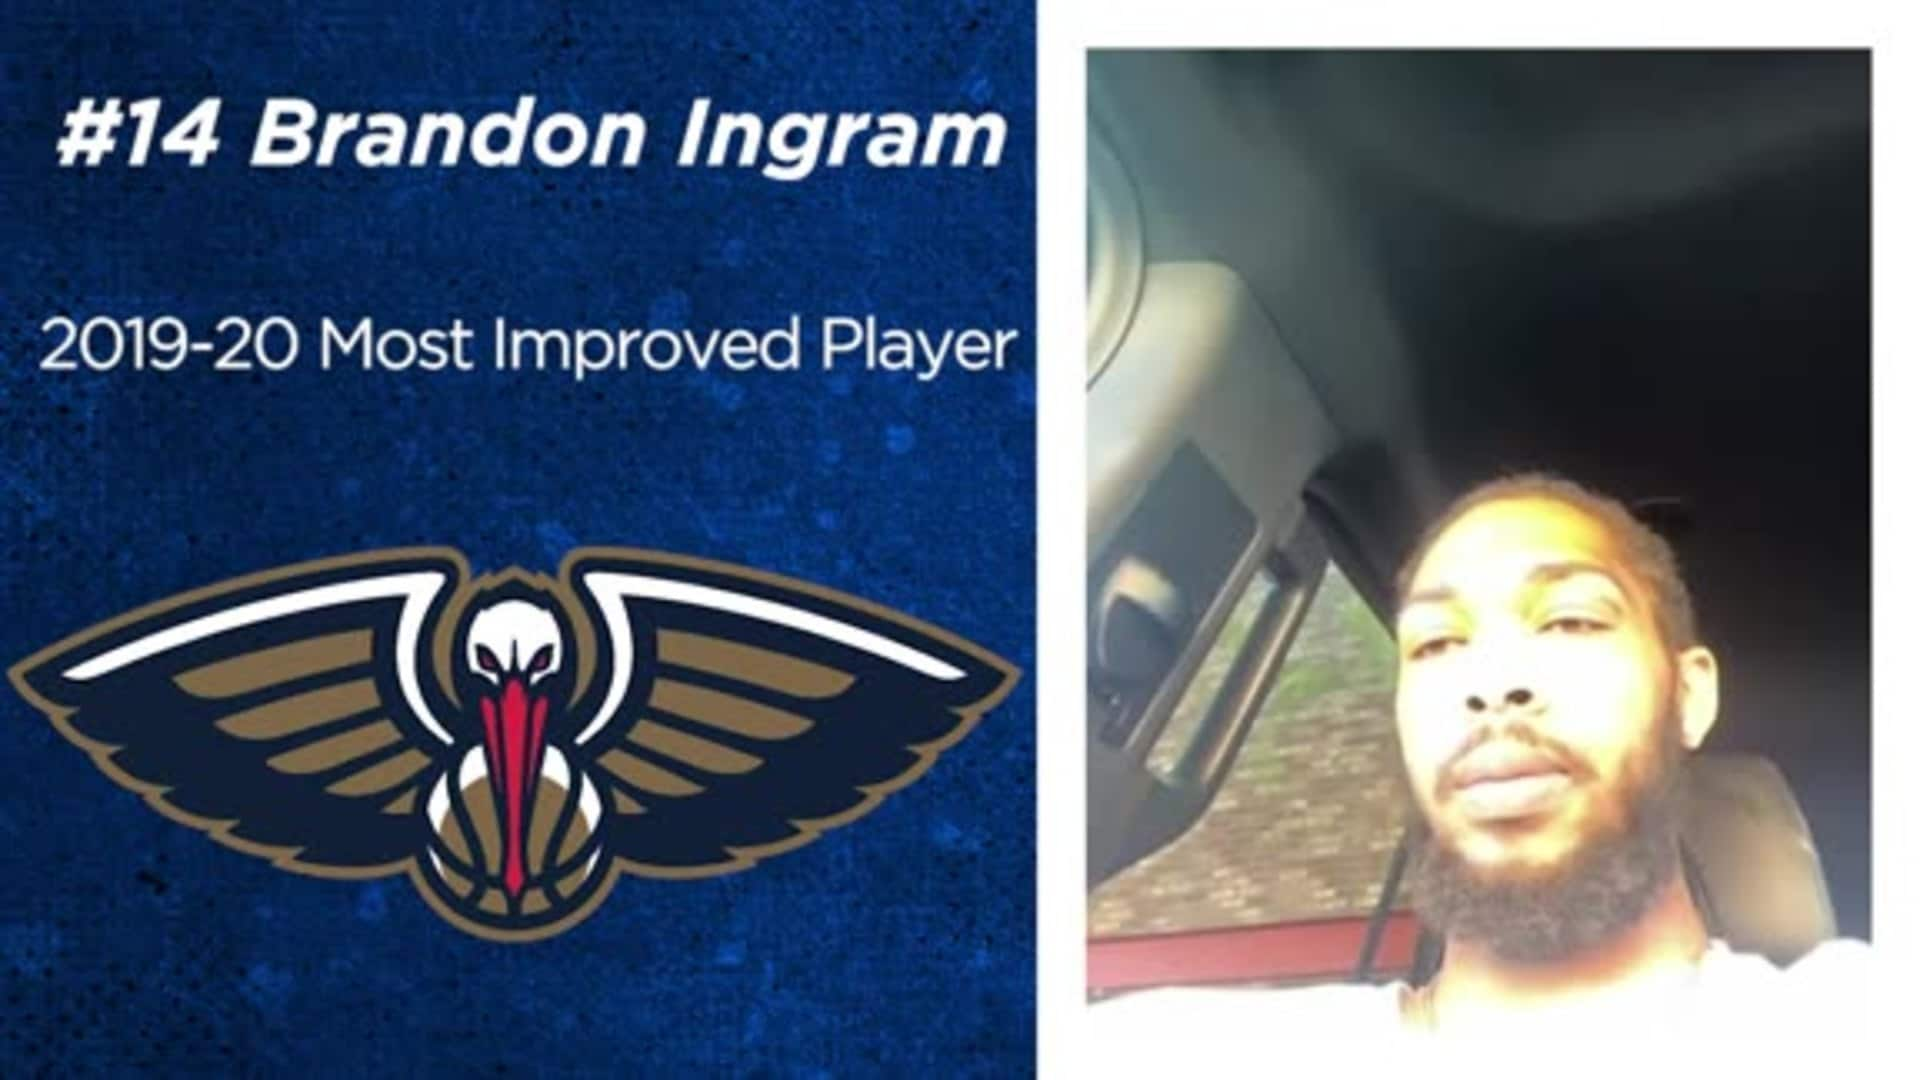 Pelicans forward Brandon Ingram shares his thoughts on winning Most Improved Player of the Year award